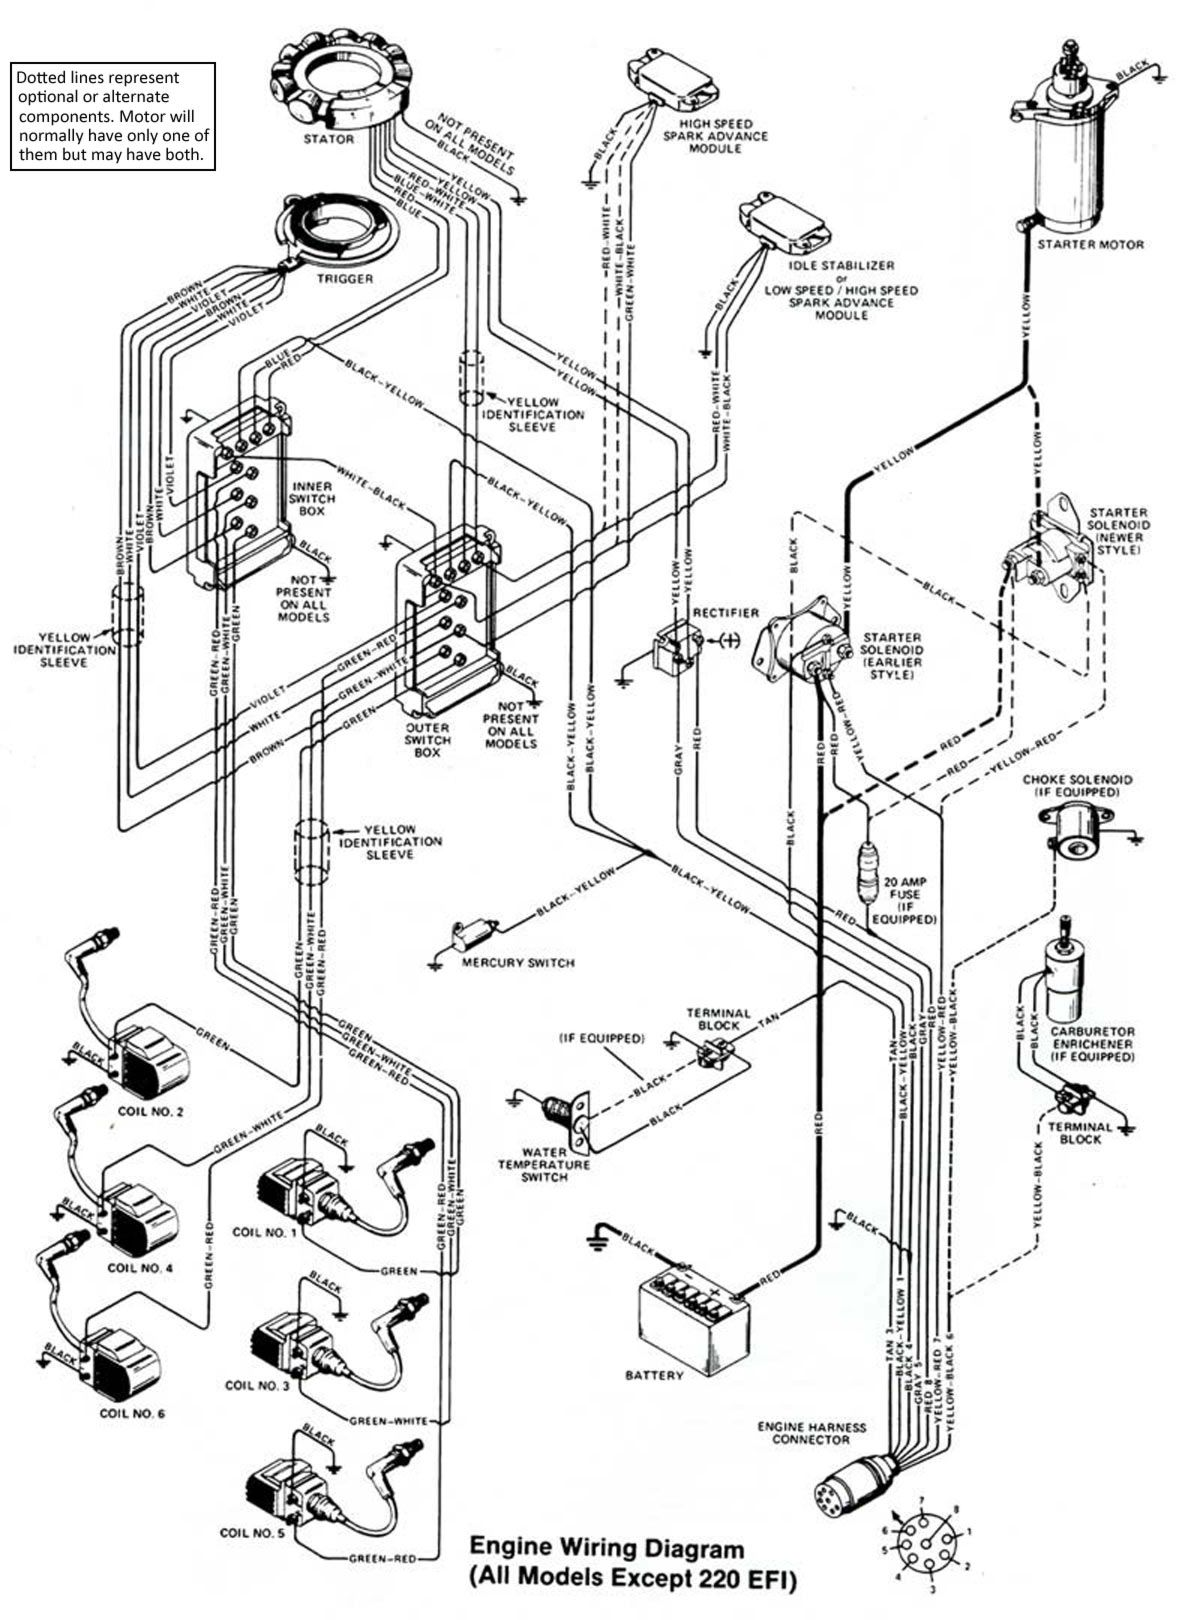 135 Mercury Tach Wiring Diagram Opinions About Sportster Electric Sending Unit For Speedo Blackmax Sig Page 1 Iboats Boating Forums Rh Pinterest Com 125 Outboard